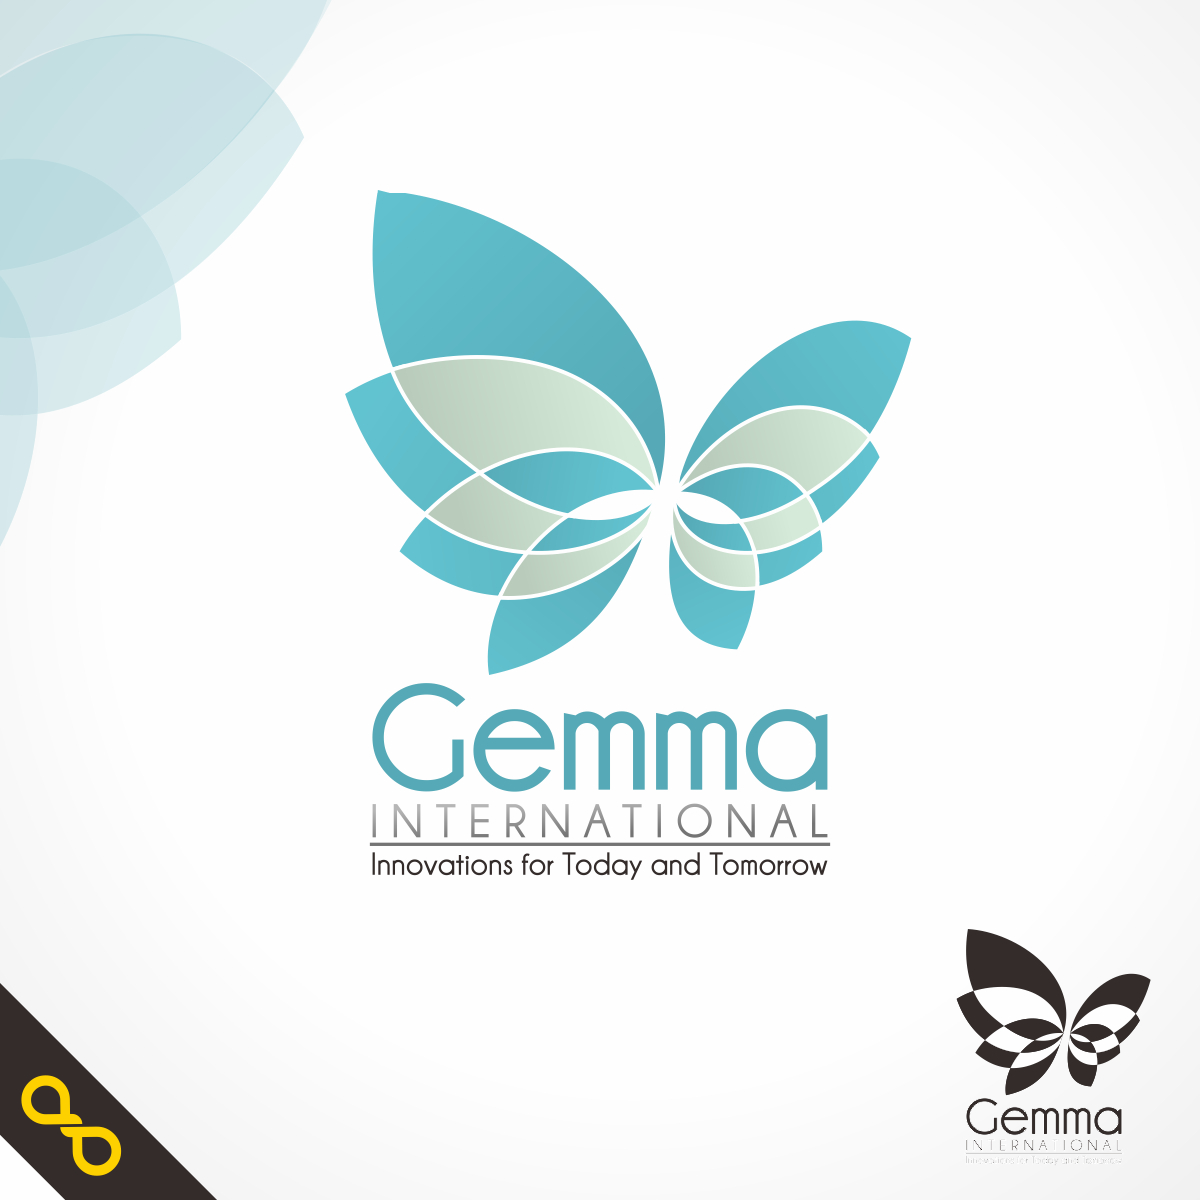 Logo Design by PJD - Entry No. 21 in the Logo Design Contest Artistic Logo Design for Gemma International.